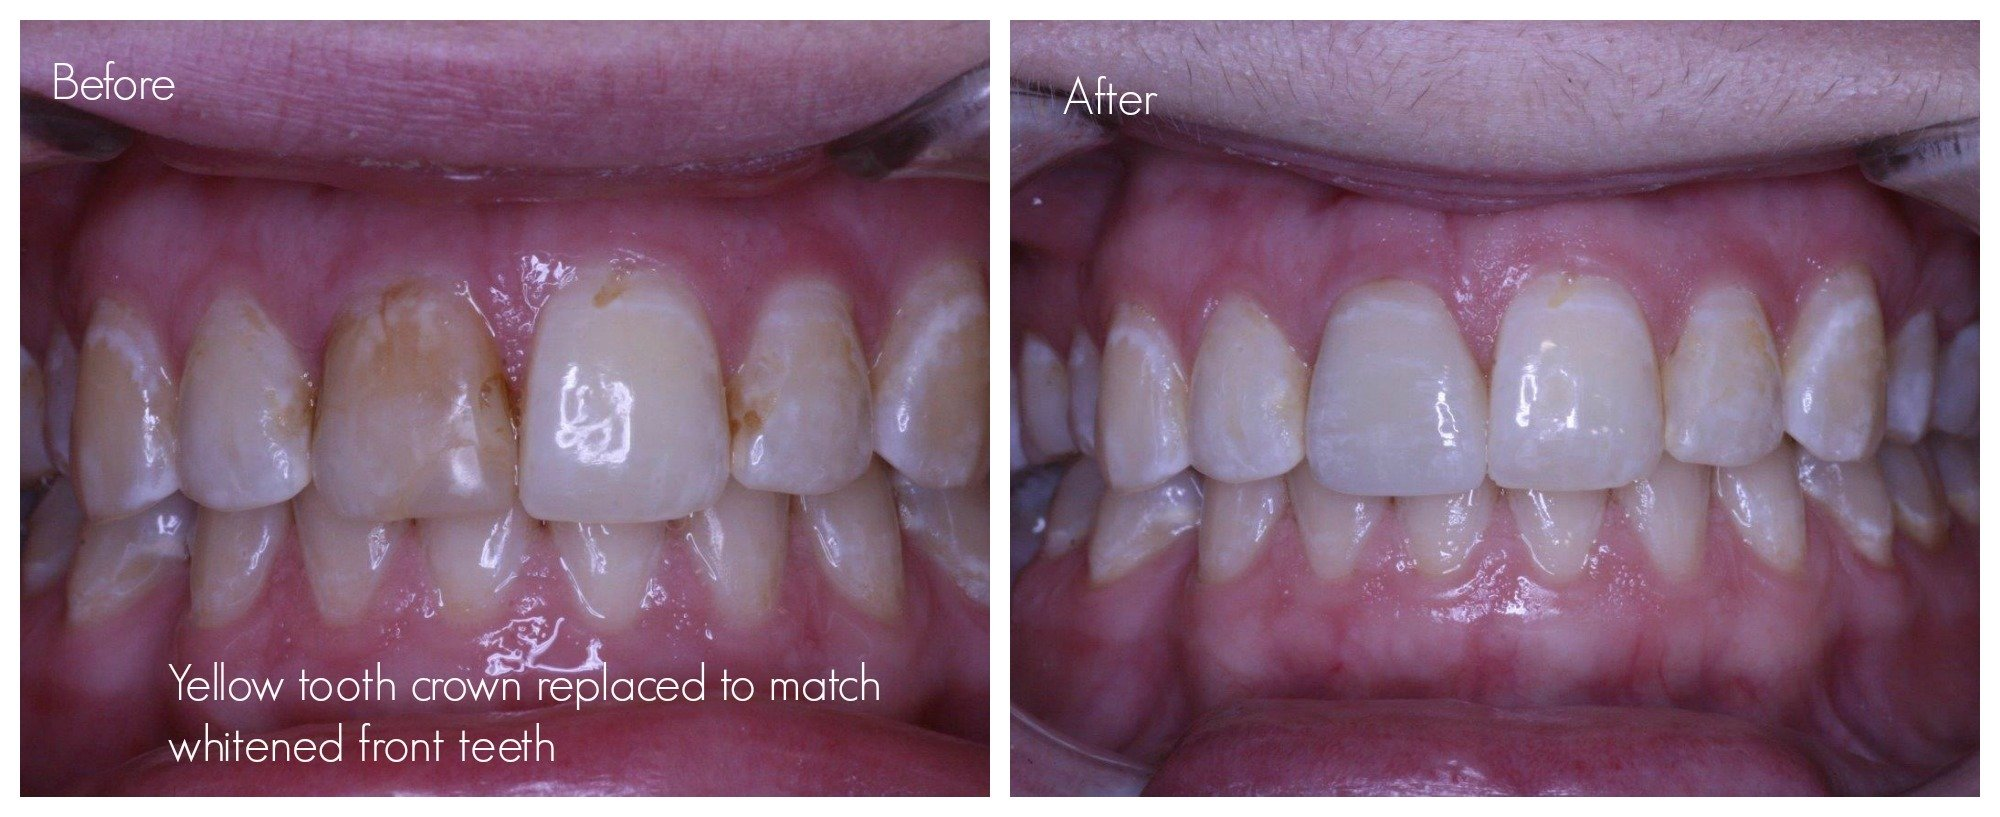 Tooth crown replacement as the colour of tooth crown no longer matches the colour of adjacent teeth